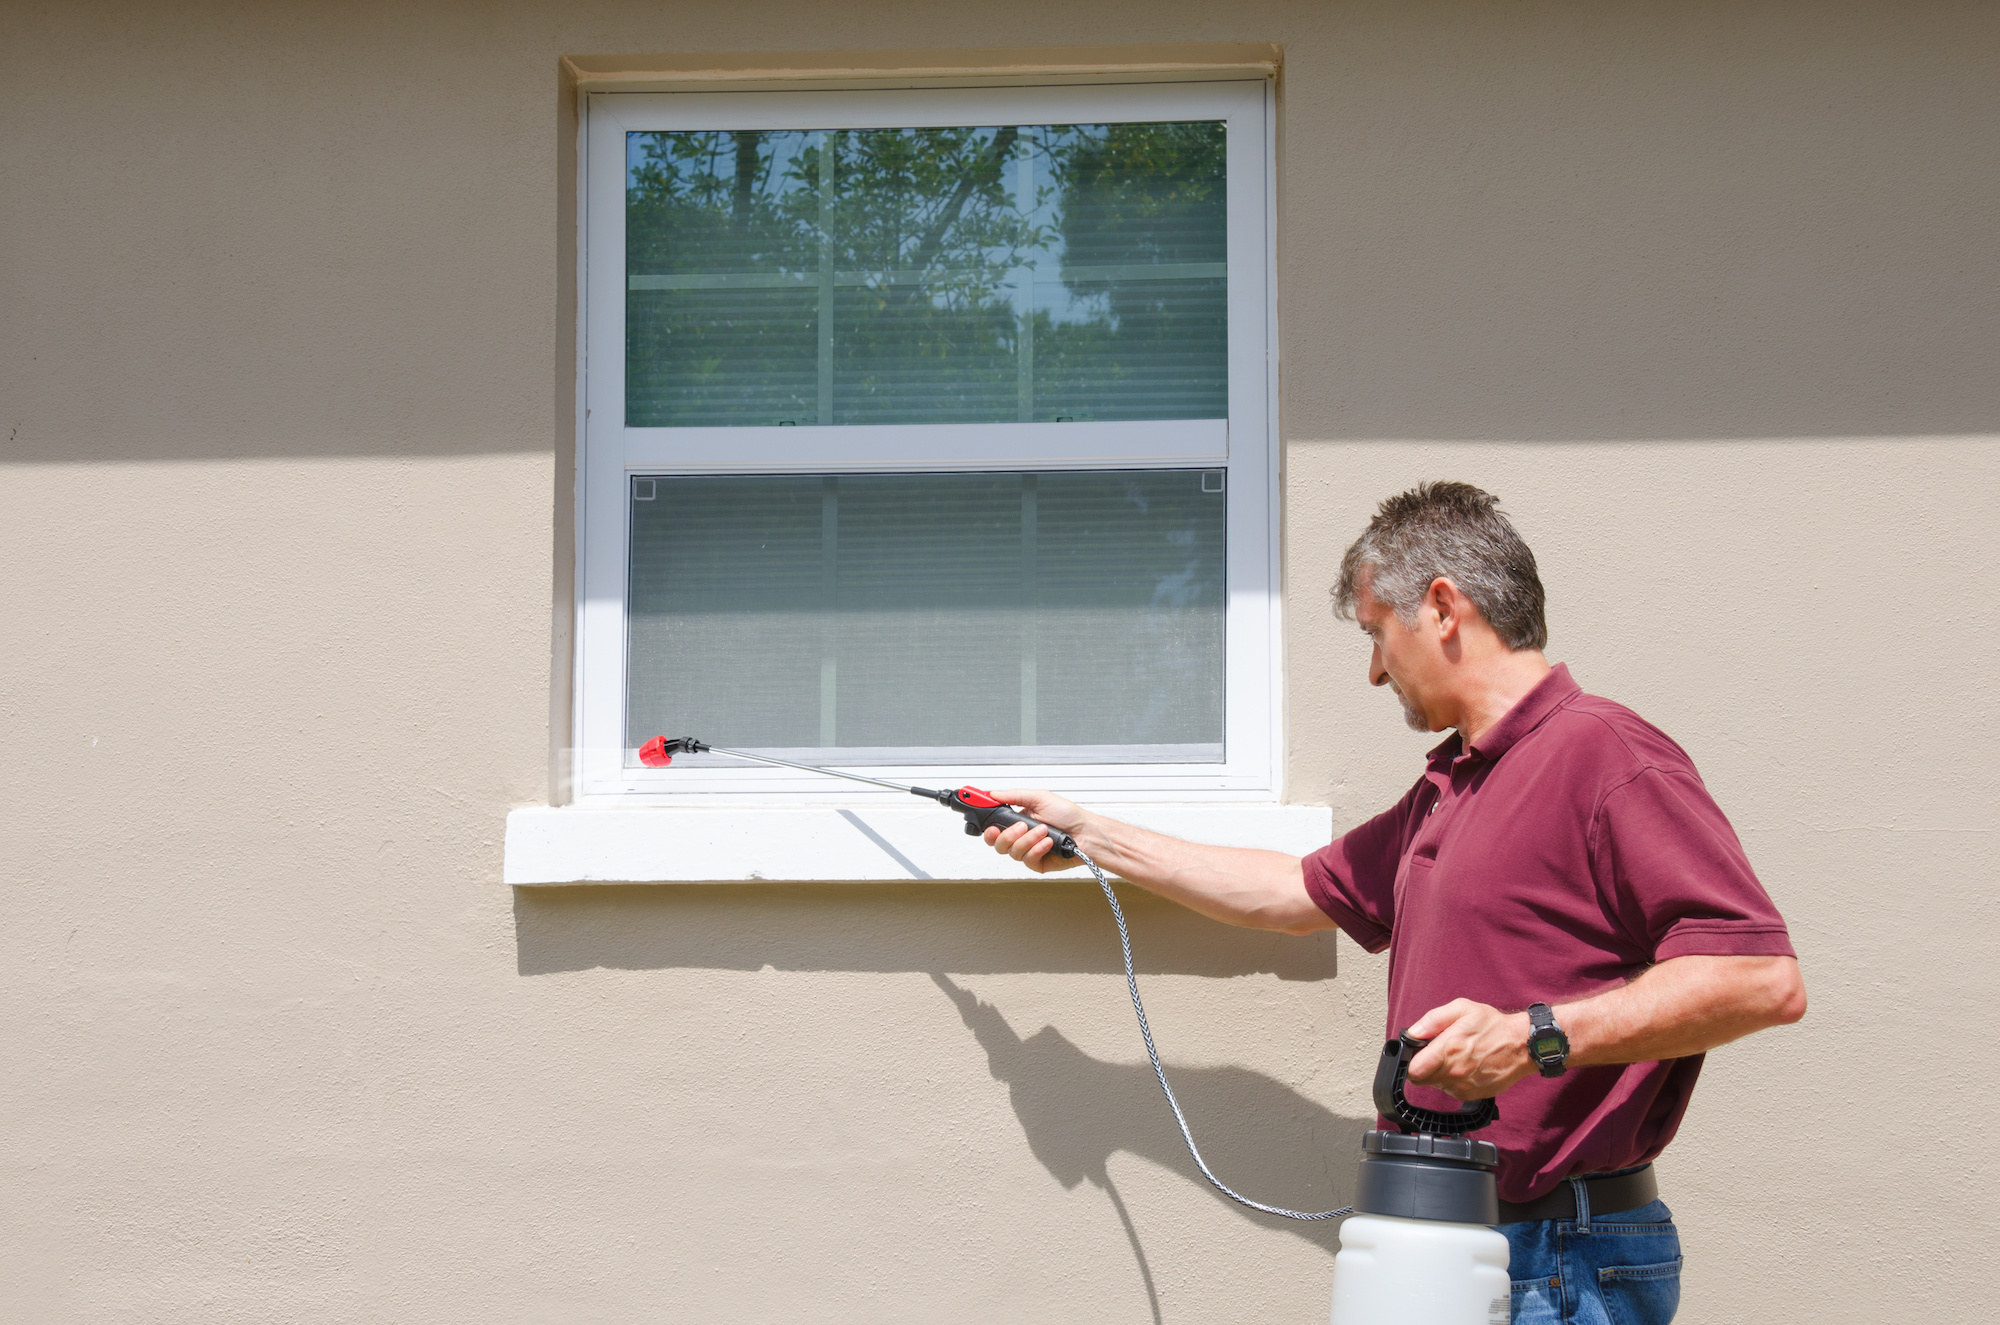 Professional pest control service DIY home owner